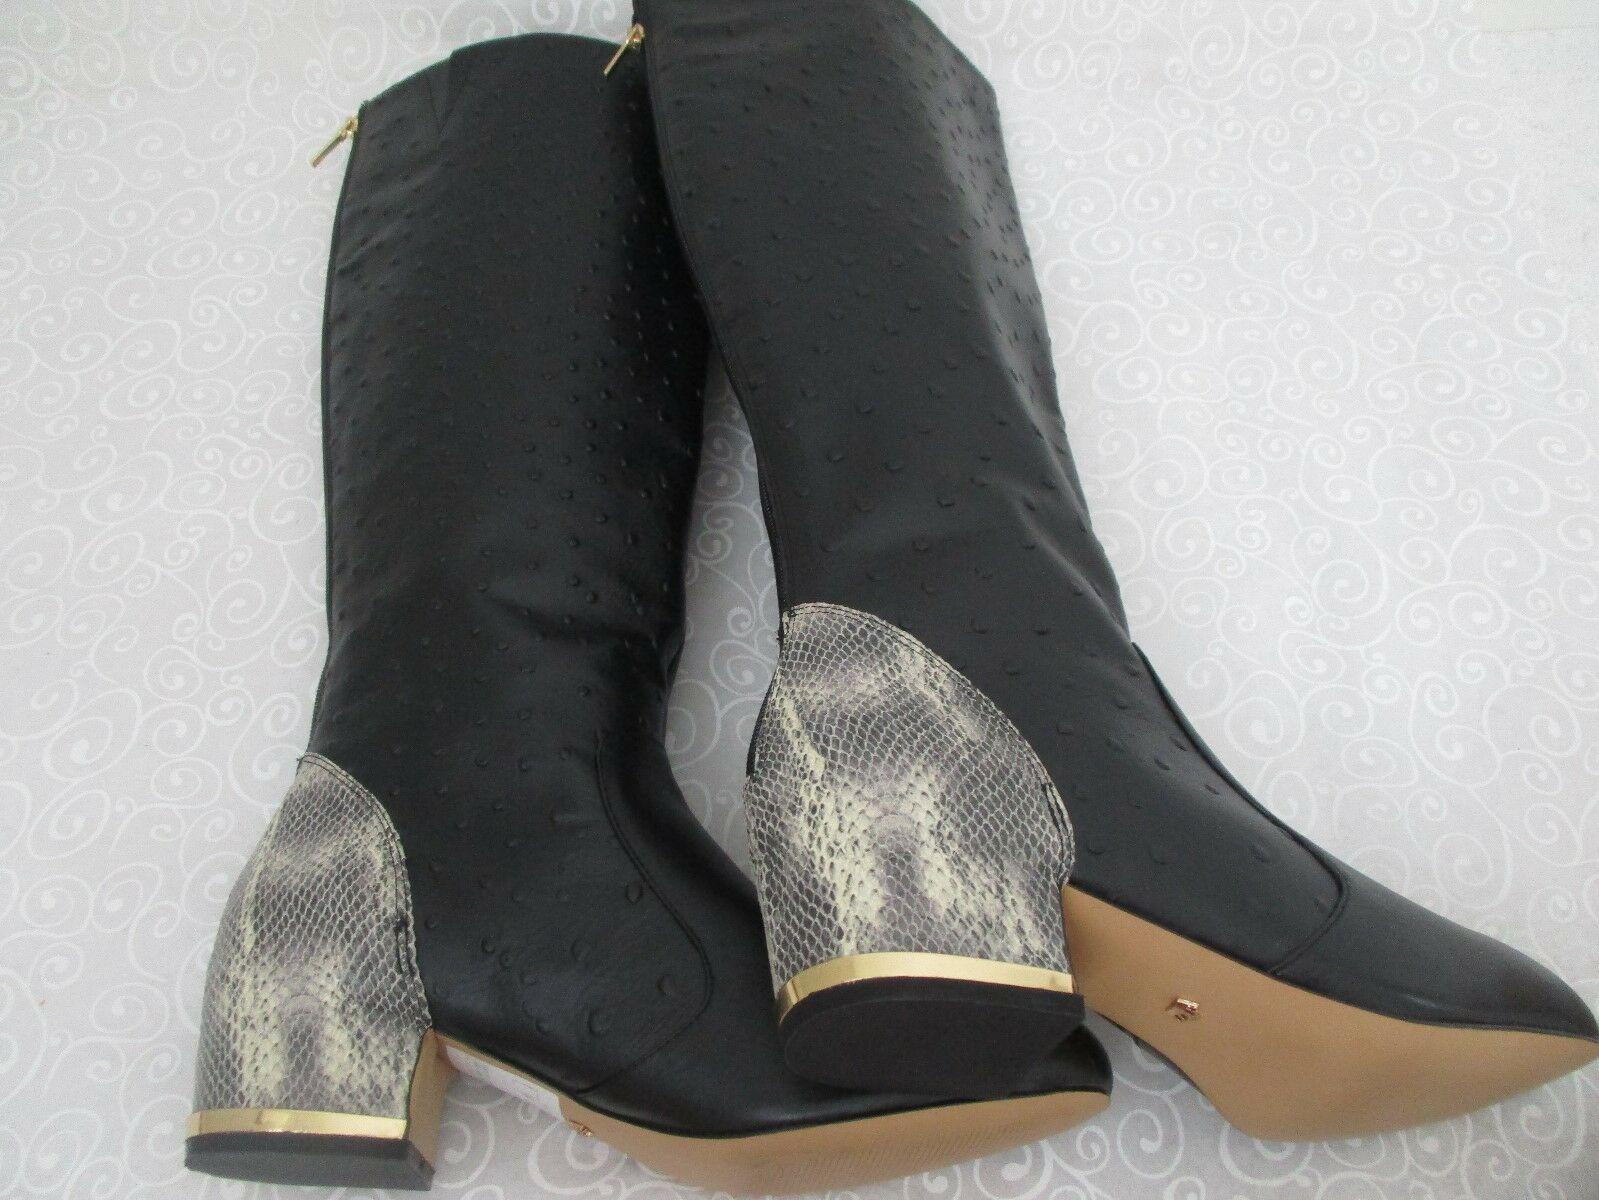 239 DEESIGNS BLACK OSTRICH LEATHER 11 KNEE HIGH Stiefel SIZE 11 LEATHER W - NEW b35af1